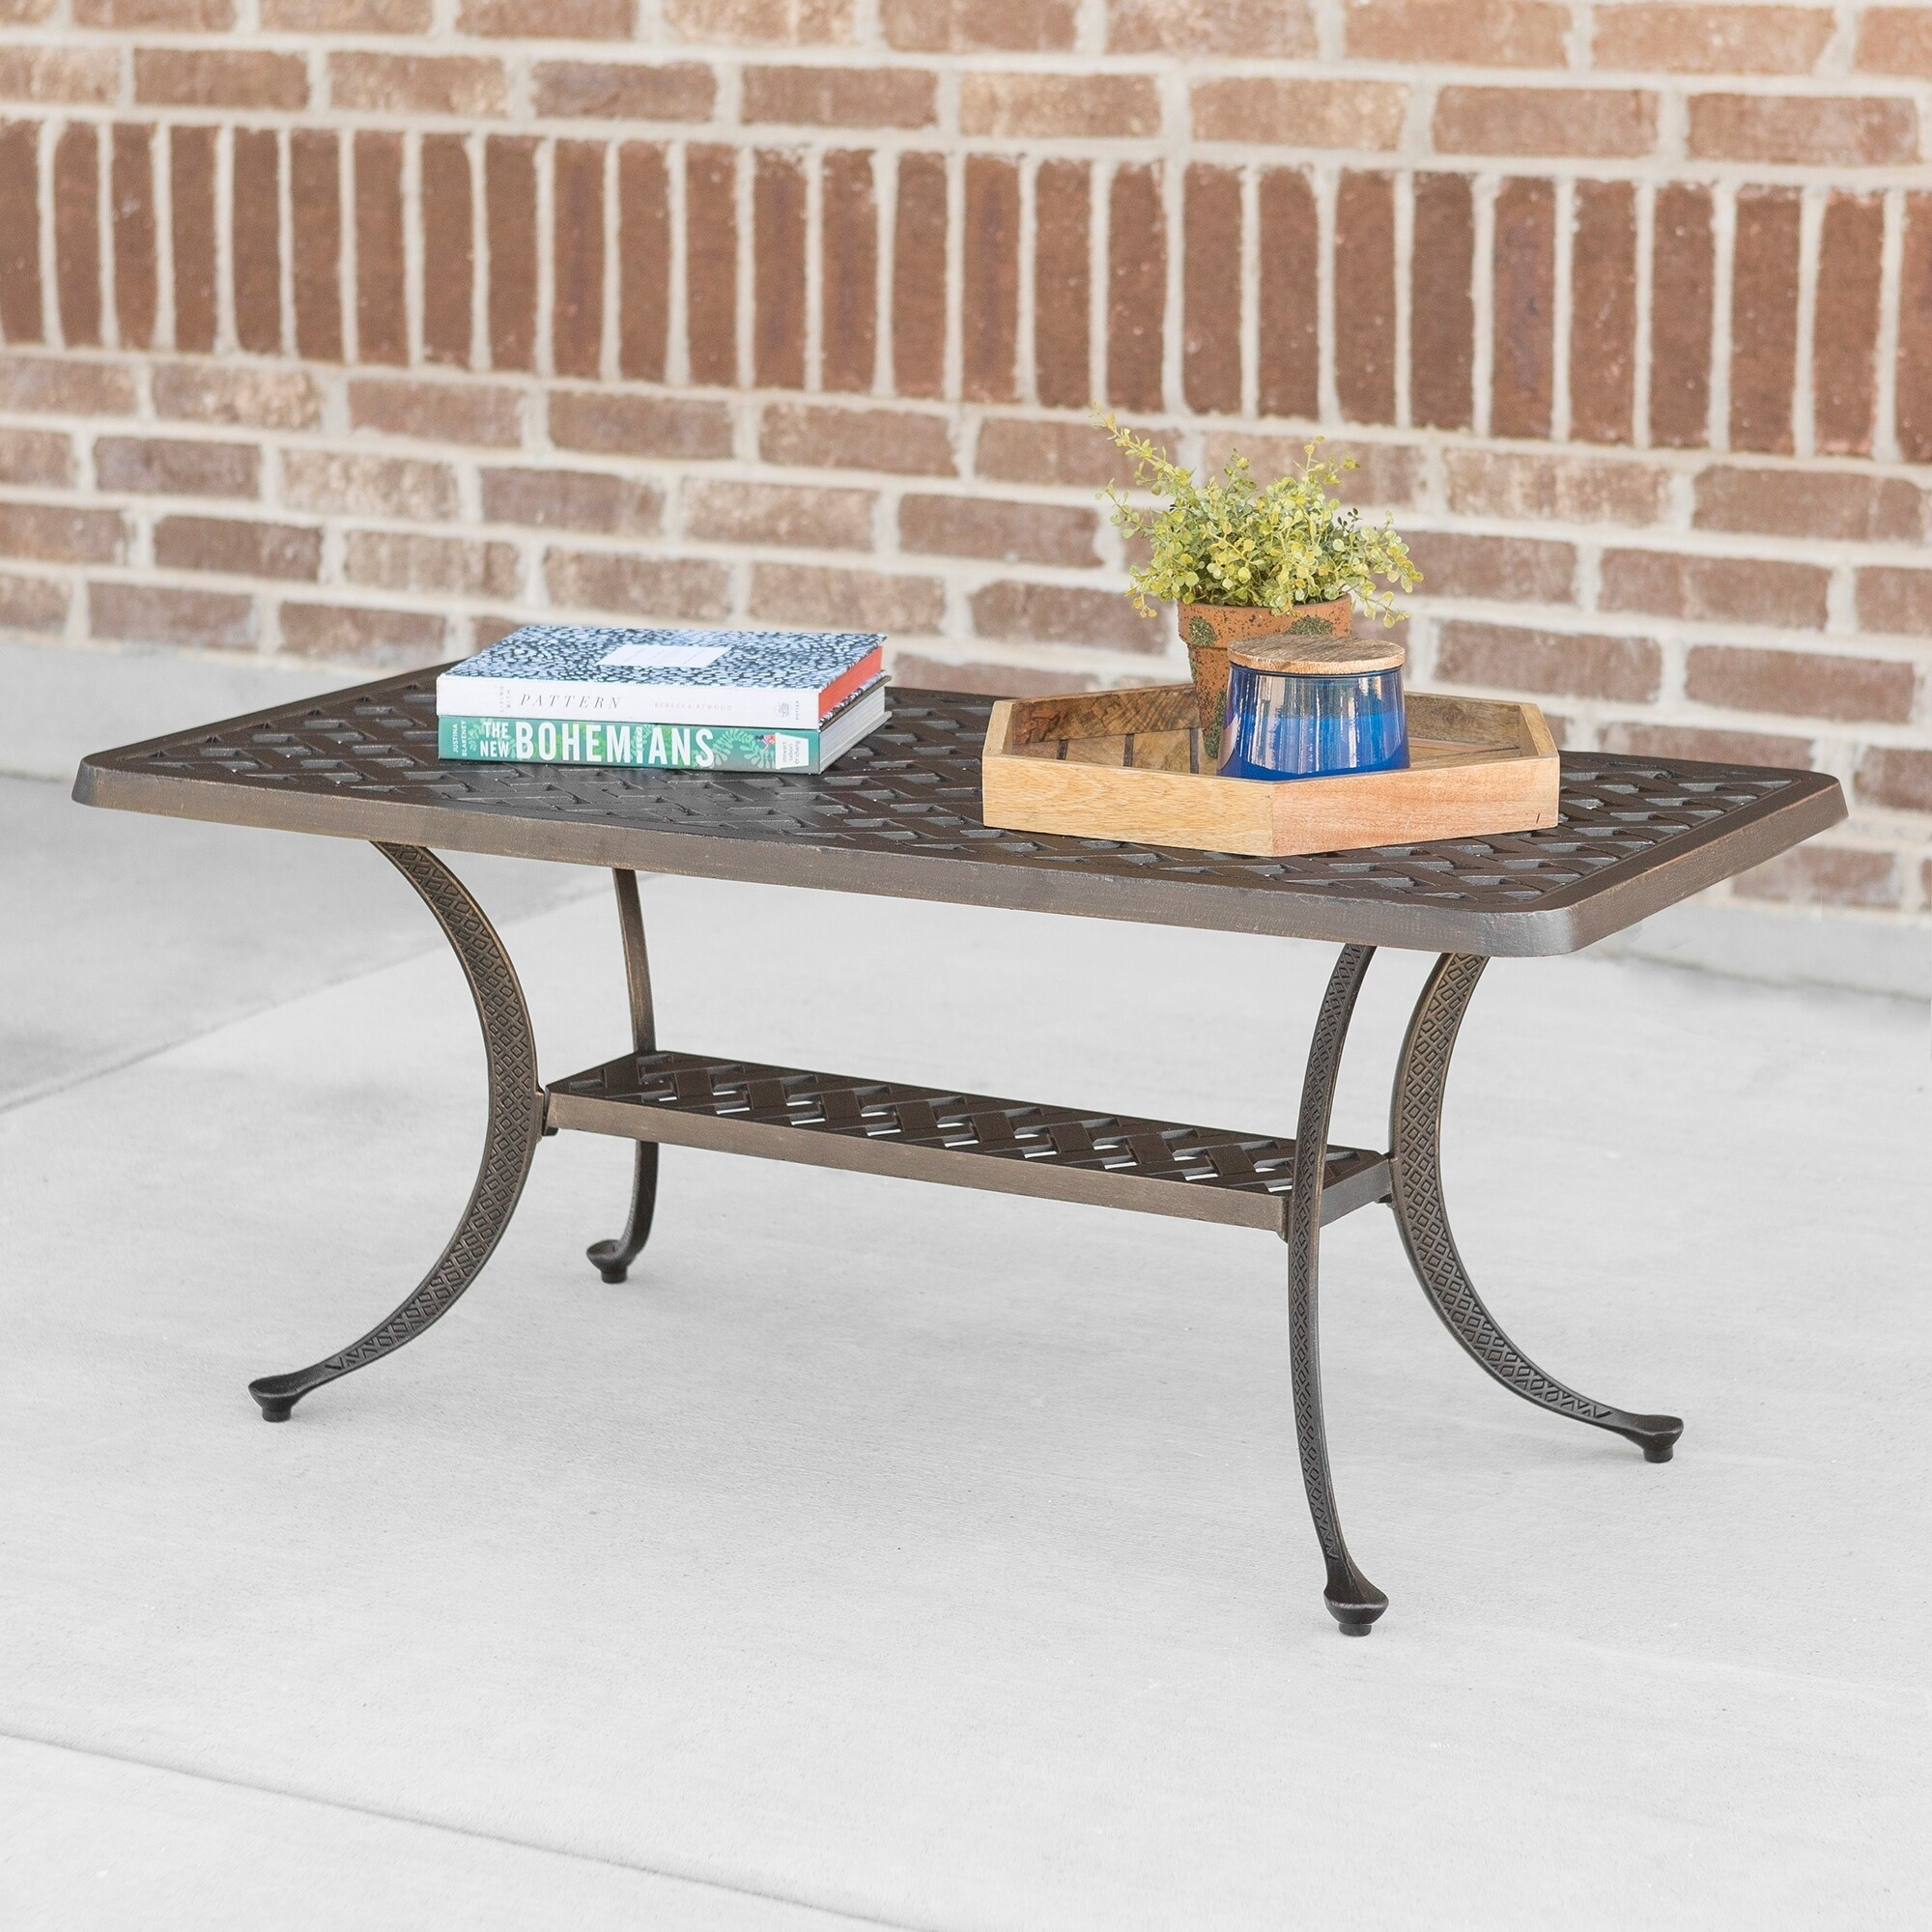 Shop Cast Aluminum Wicker Style Outdoor Coffee Table Antique